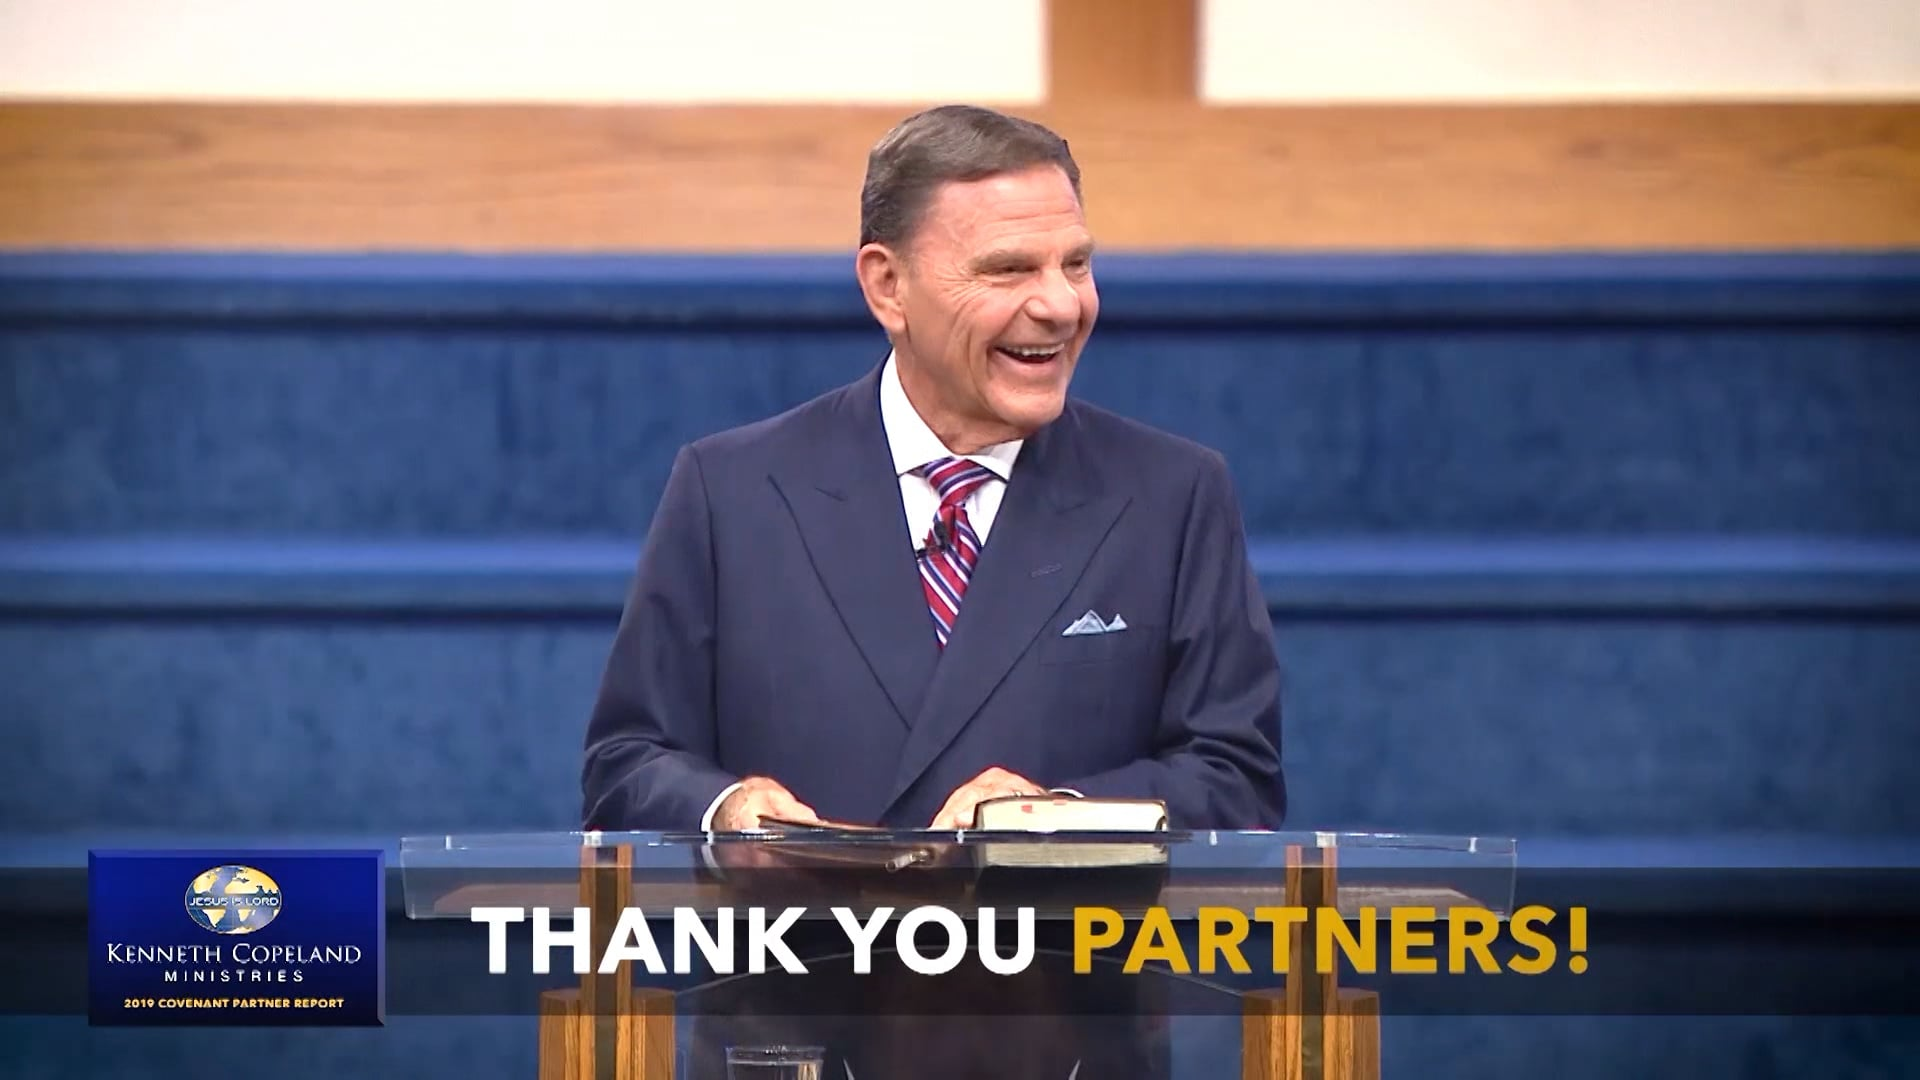 At the 2020 Faith for Our Nation VICTORY Campaign, Kenneth Copeland shares how together, we are impacting the world. Watch several testimonies that highlight the benefits of partnership with KCM. See an exciting recap of the lives changed all over the globe due to the faithful support of KCM Partners!